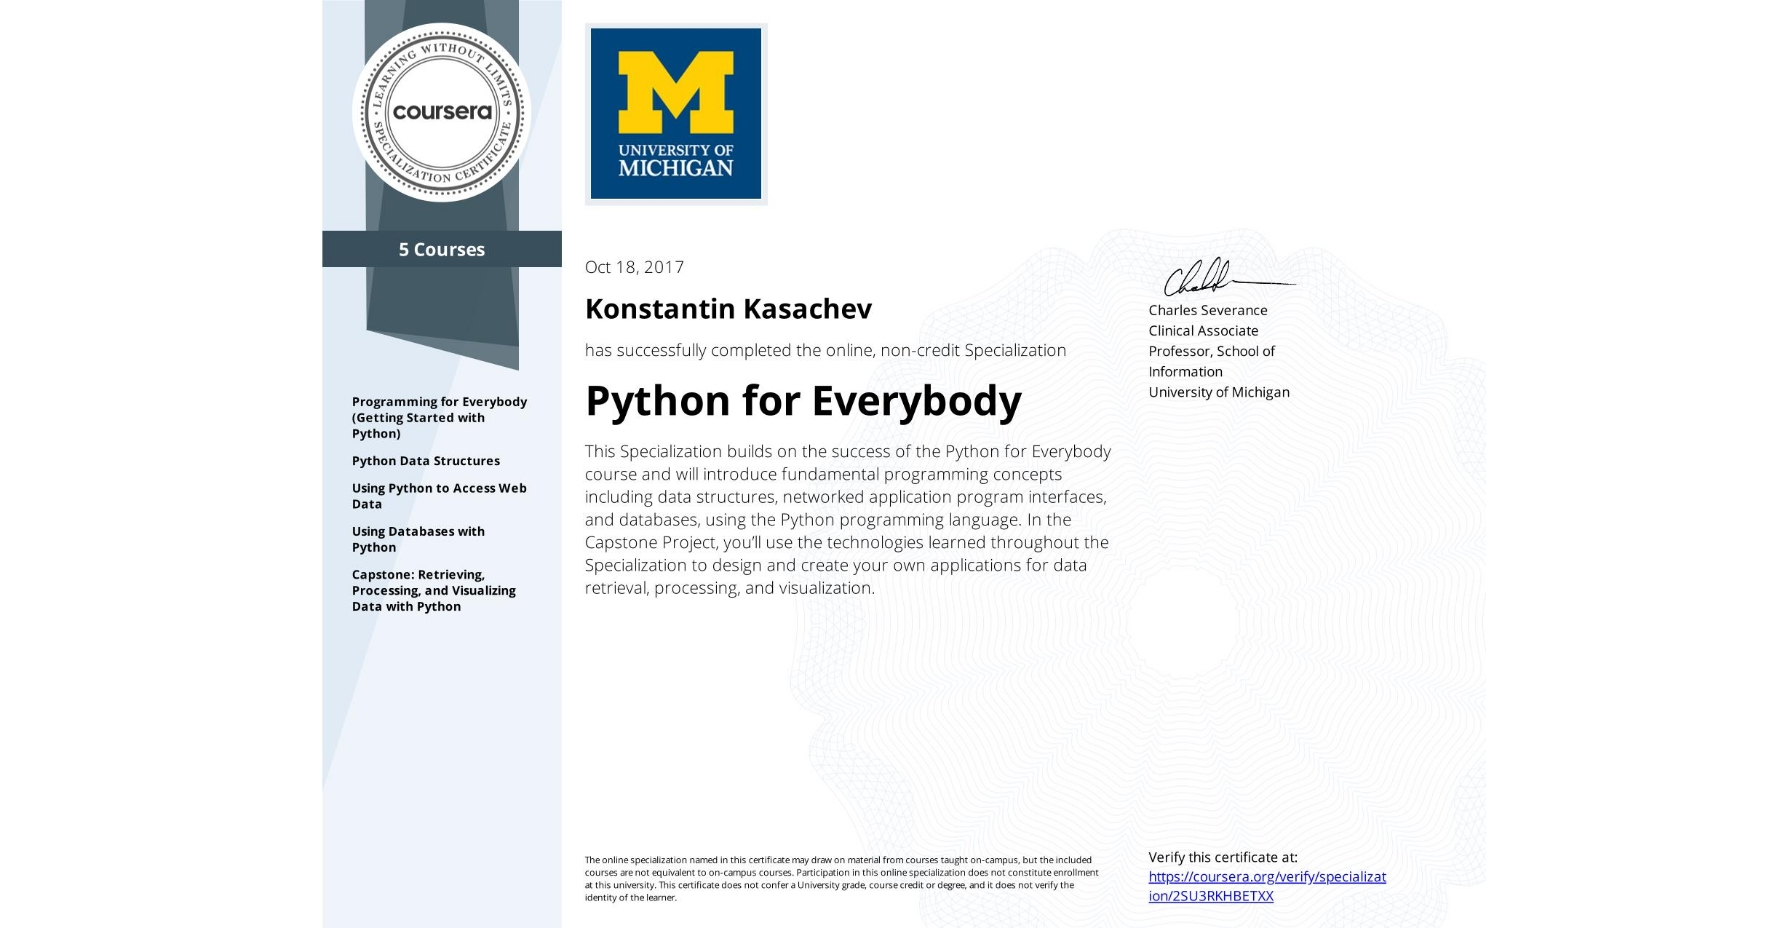 View certificate for Konstantin Kasachev, Python for Everybody, offered through Coursera. This Specialization builds on the success of the Python for Everybody course and will introduce fundamental programming concepts including data structures, networked application program interfaces, and databases, using the Python programming language. In the Capstone Project, you'll use the technologies learned throughout the Specialization to design and create your own applications for data retrieval, processing, and visualization.